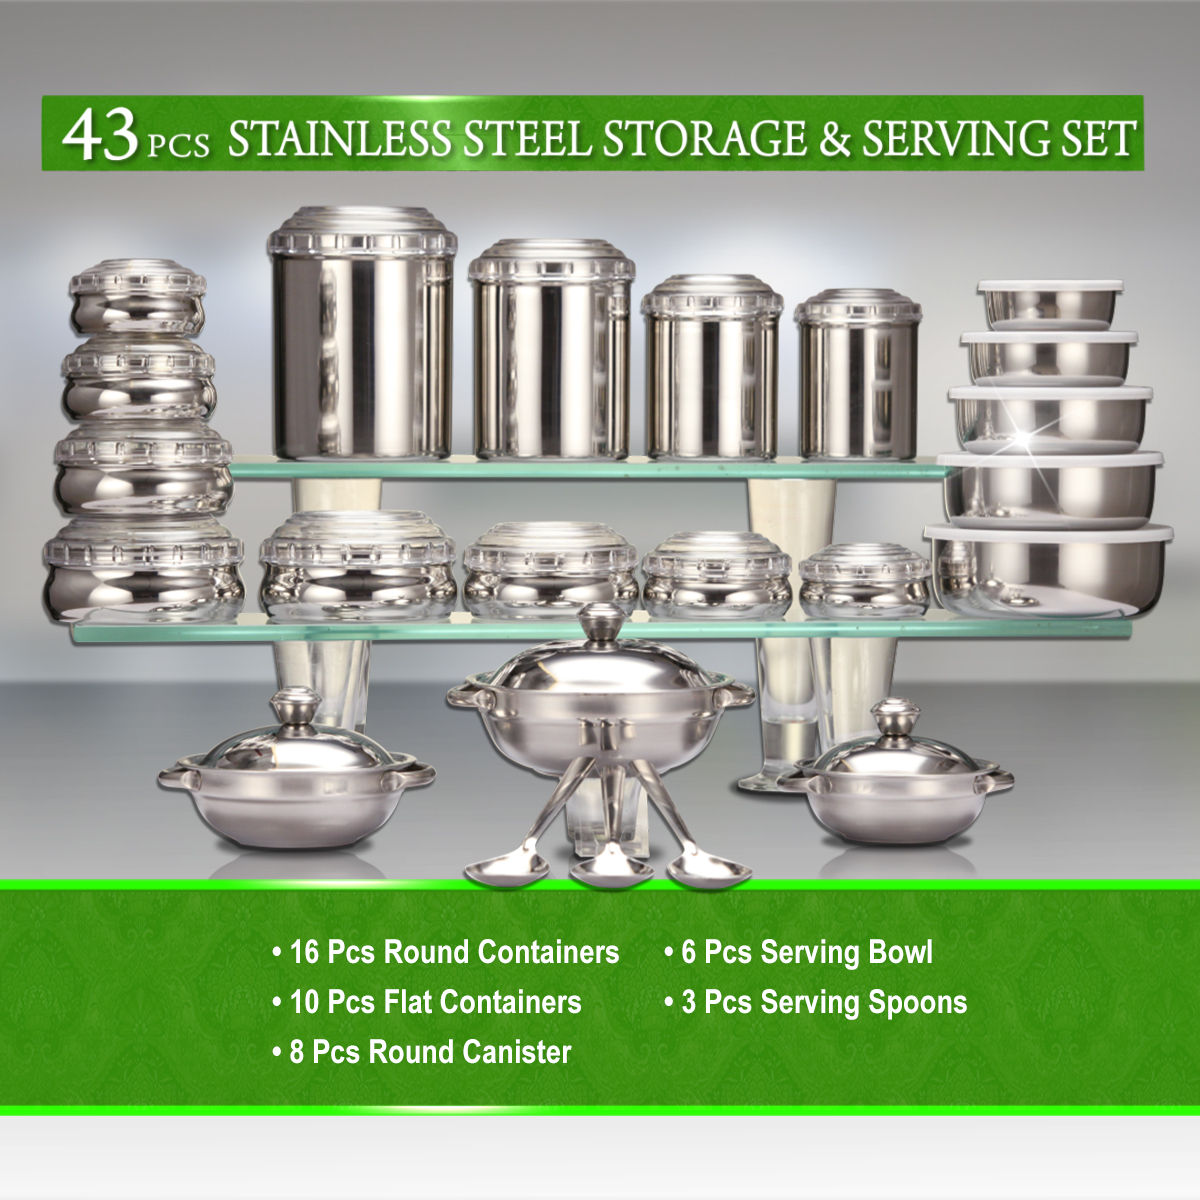 buy 43 pcs stainless steel storage serving set online at